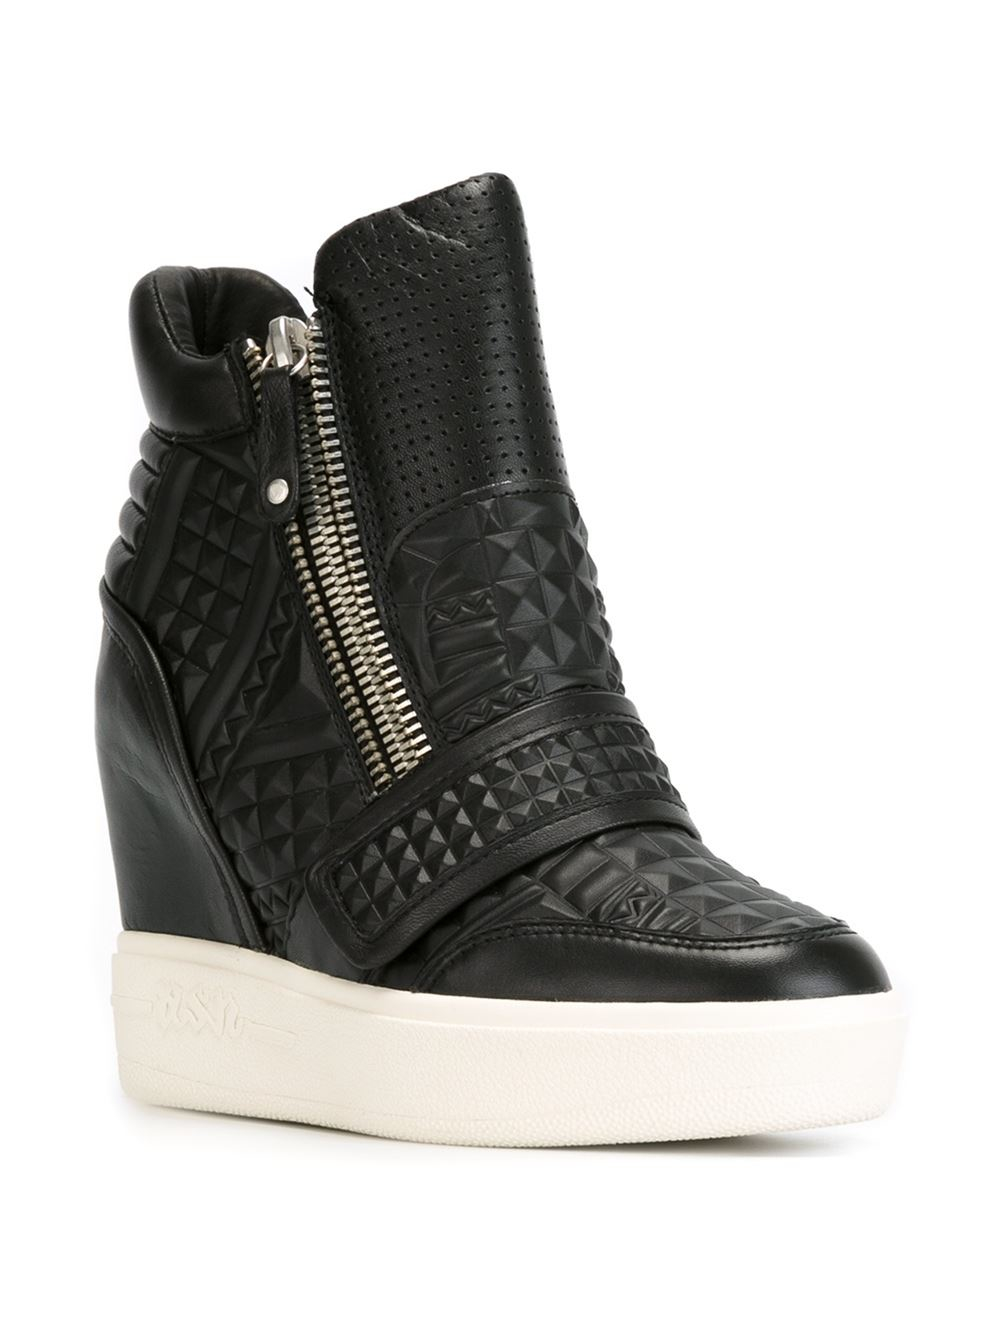 Lyst - Ash Wedge Sneakers in Black